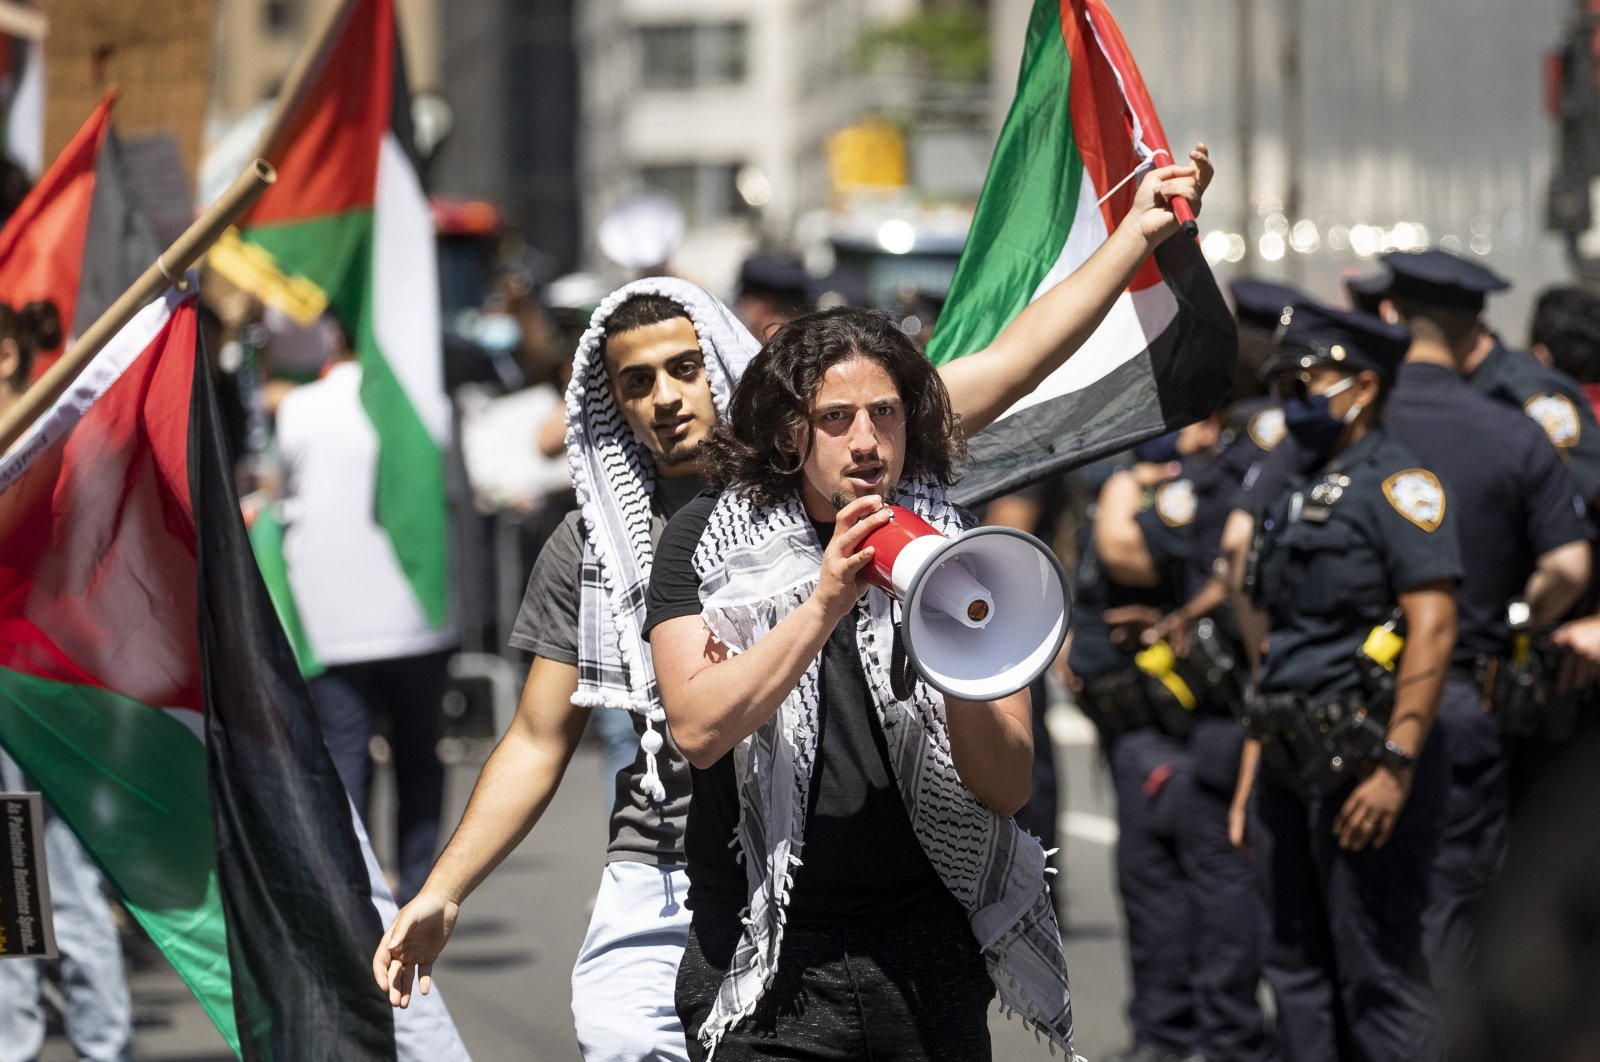 People attend a rally and march in support of Palestine near the Israeli Consulate in New York, U.S., May 18, 2021. (EPA-EFE Photo)